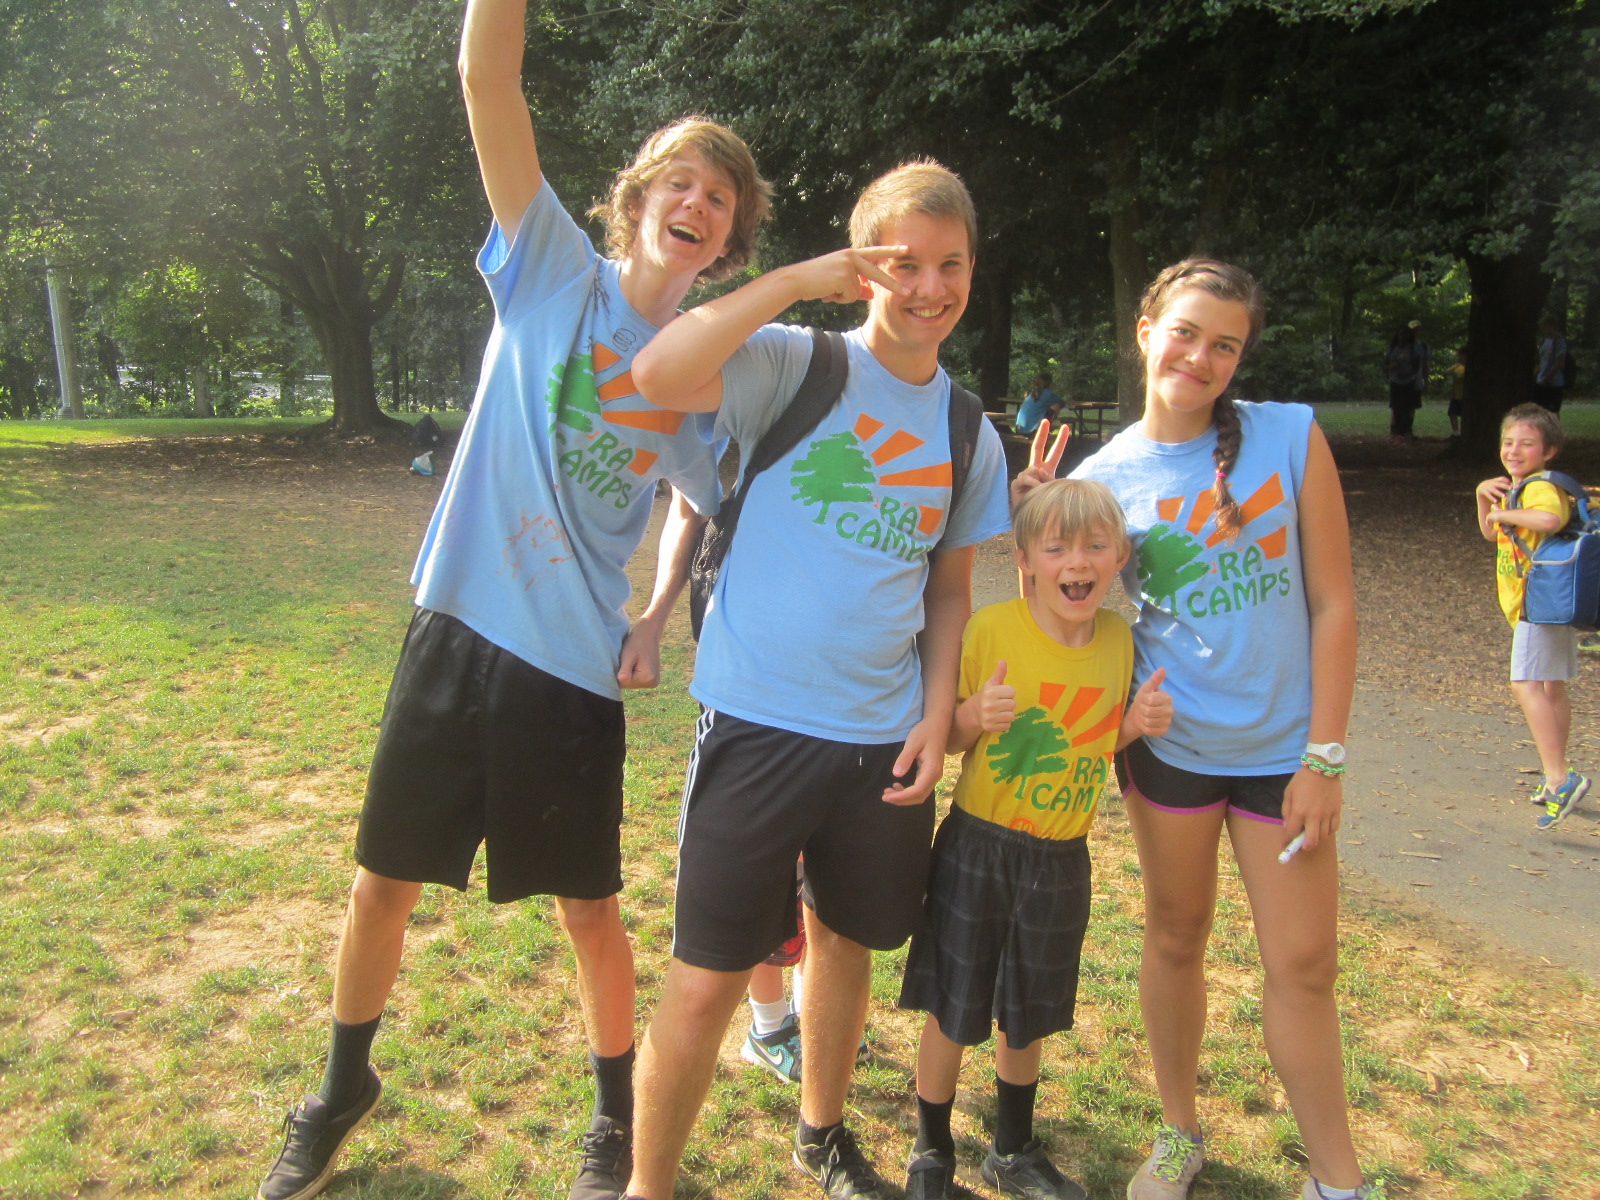 Russell with counsellors at Reston Association Camp